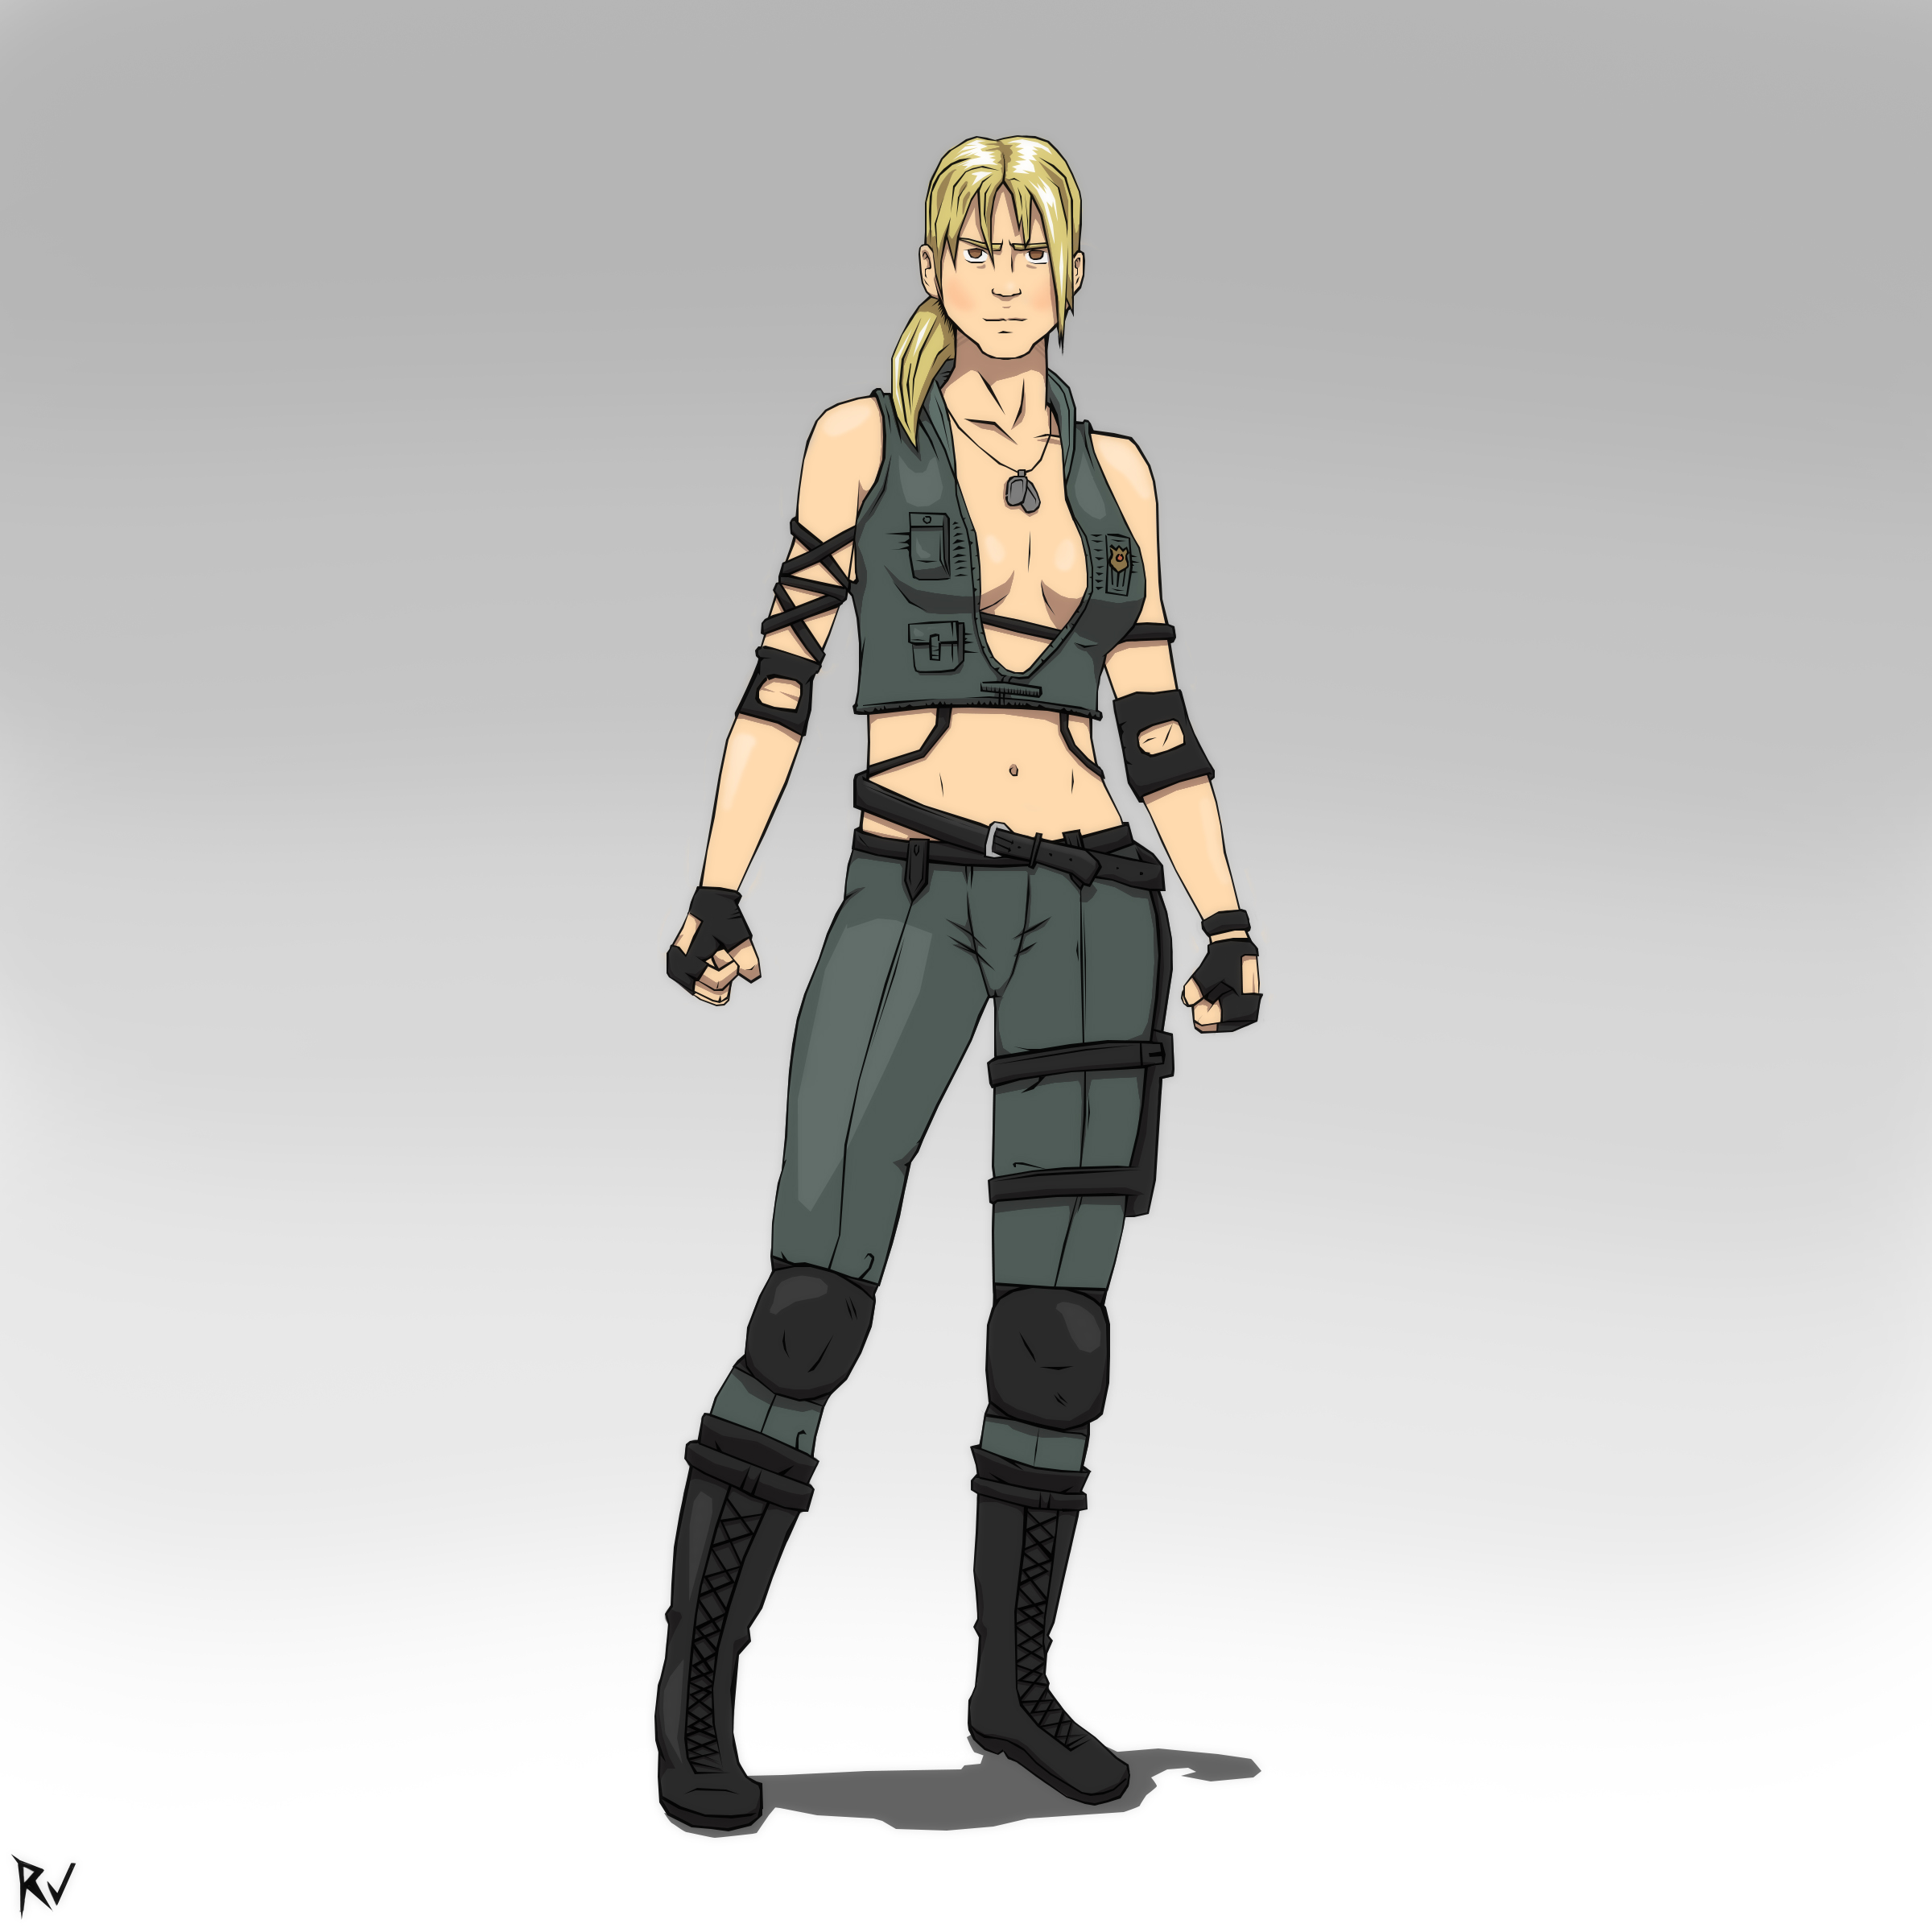 sonya_blade_by_ross_vlixes-d8wmawh.jpg